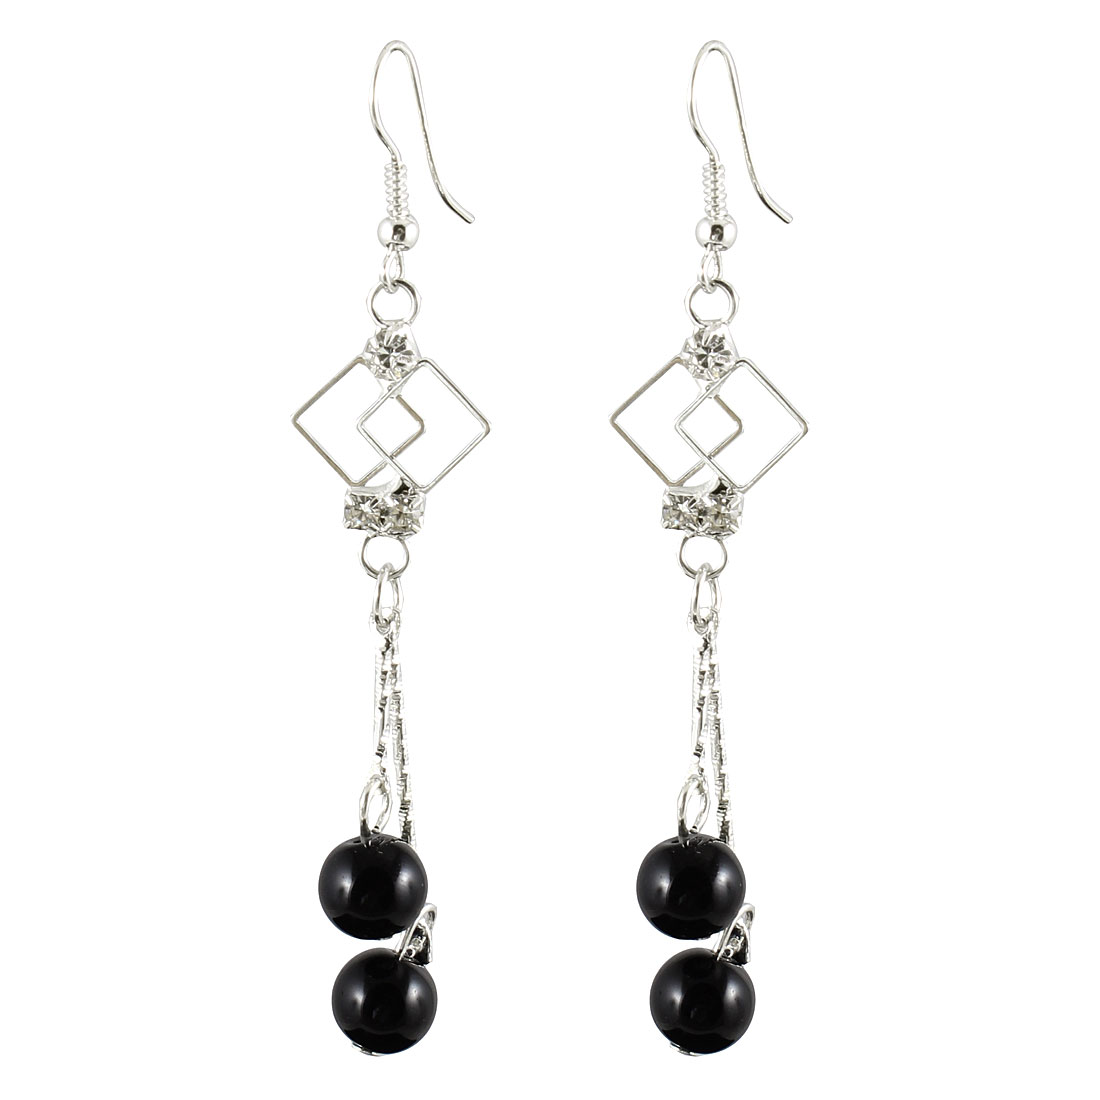 Women Rhinestone Inlaid Black Cherry Shaped Beads Dangle Hook Earrings Pair